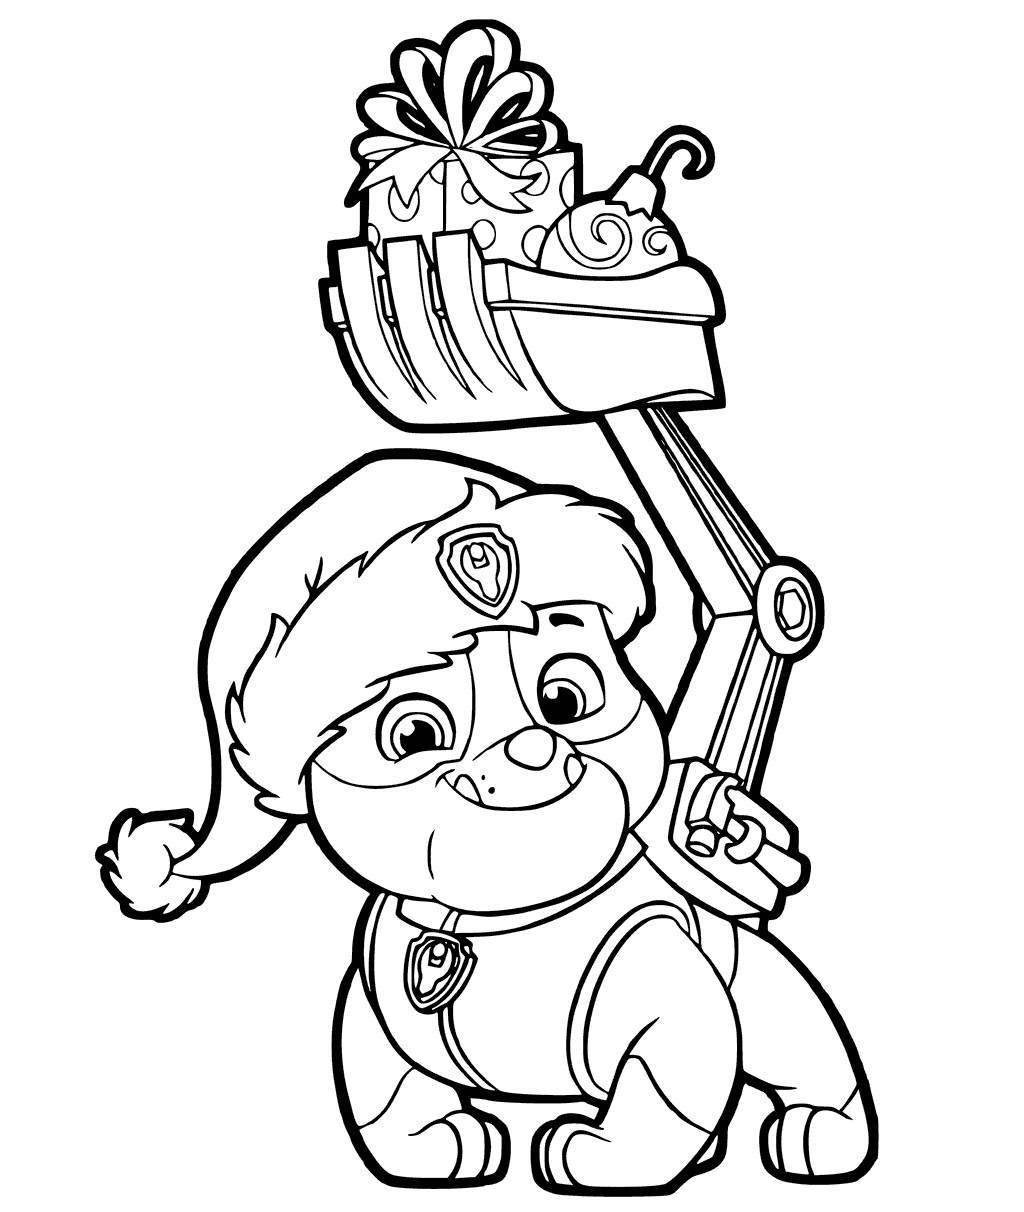 Paw Patrol Nickelodeon Coloring Pages Coloring Pages